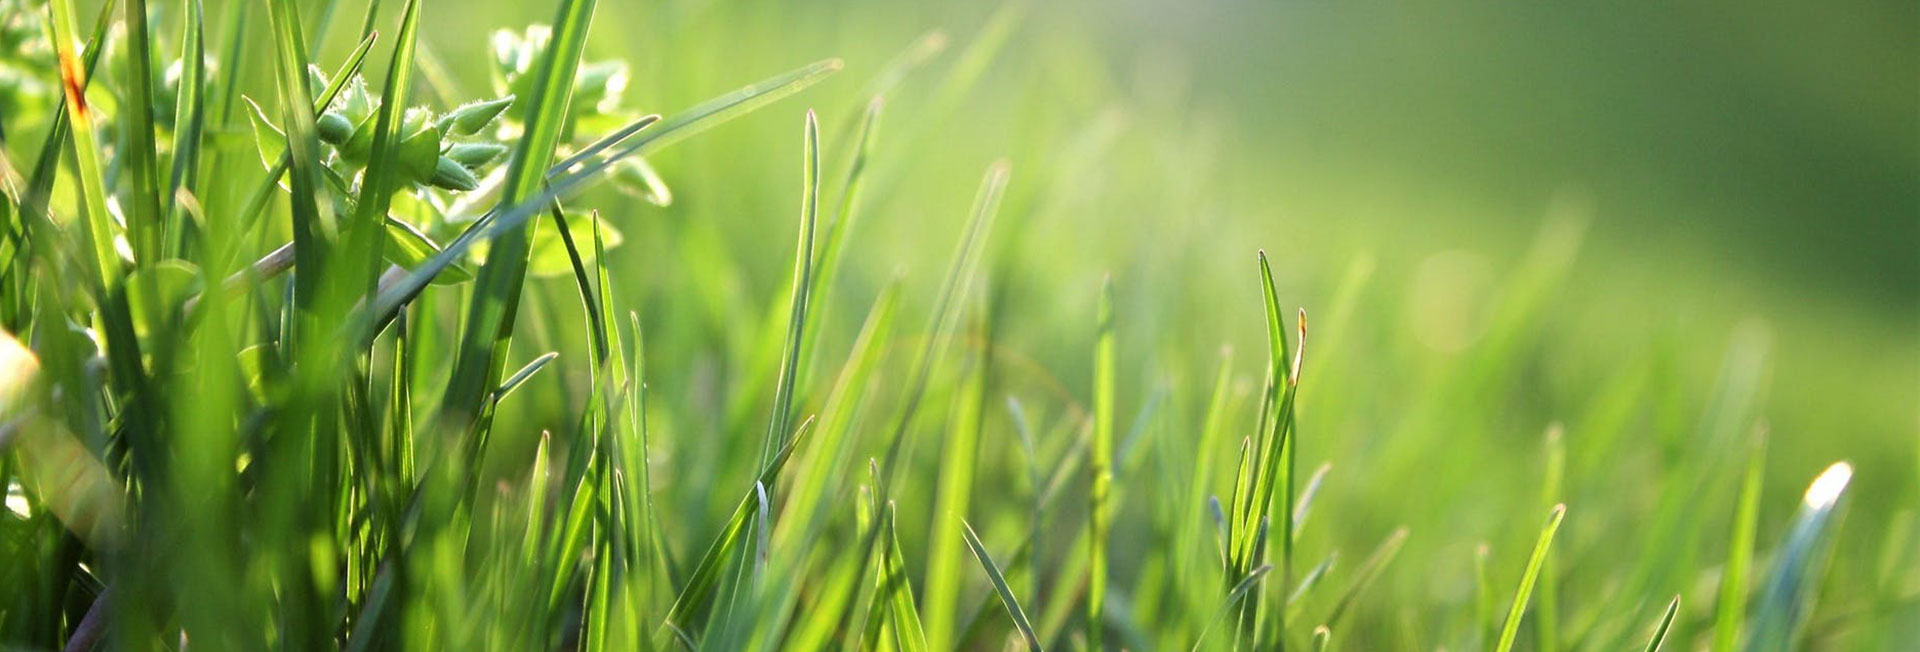 Top 10 Lawn Care Tips for a Healthy Lawn